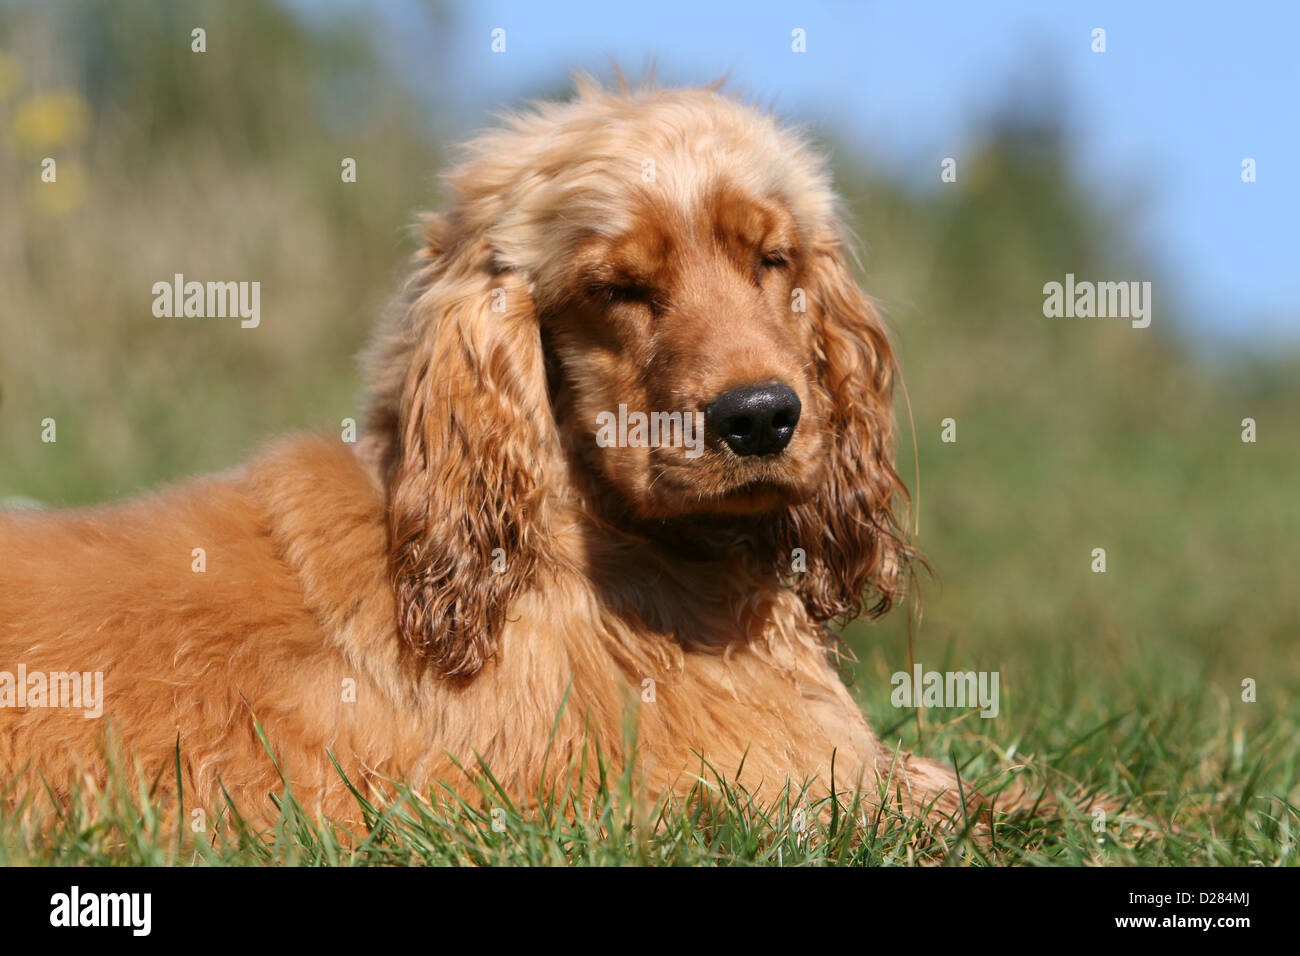 Dog English Cocker Spaniel Puppy Red Sleeping In A Meadow Stock Photo Alamy